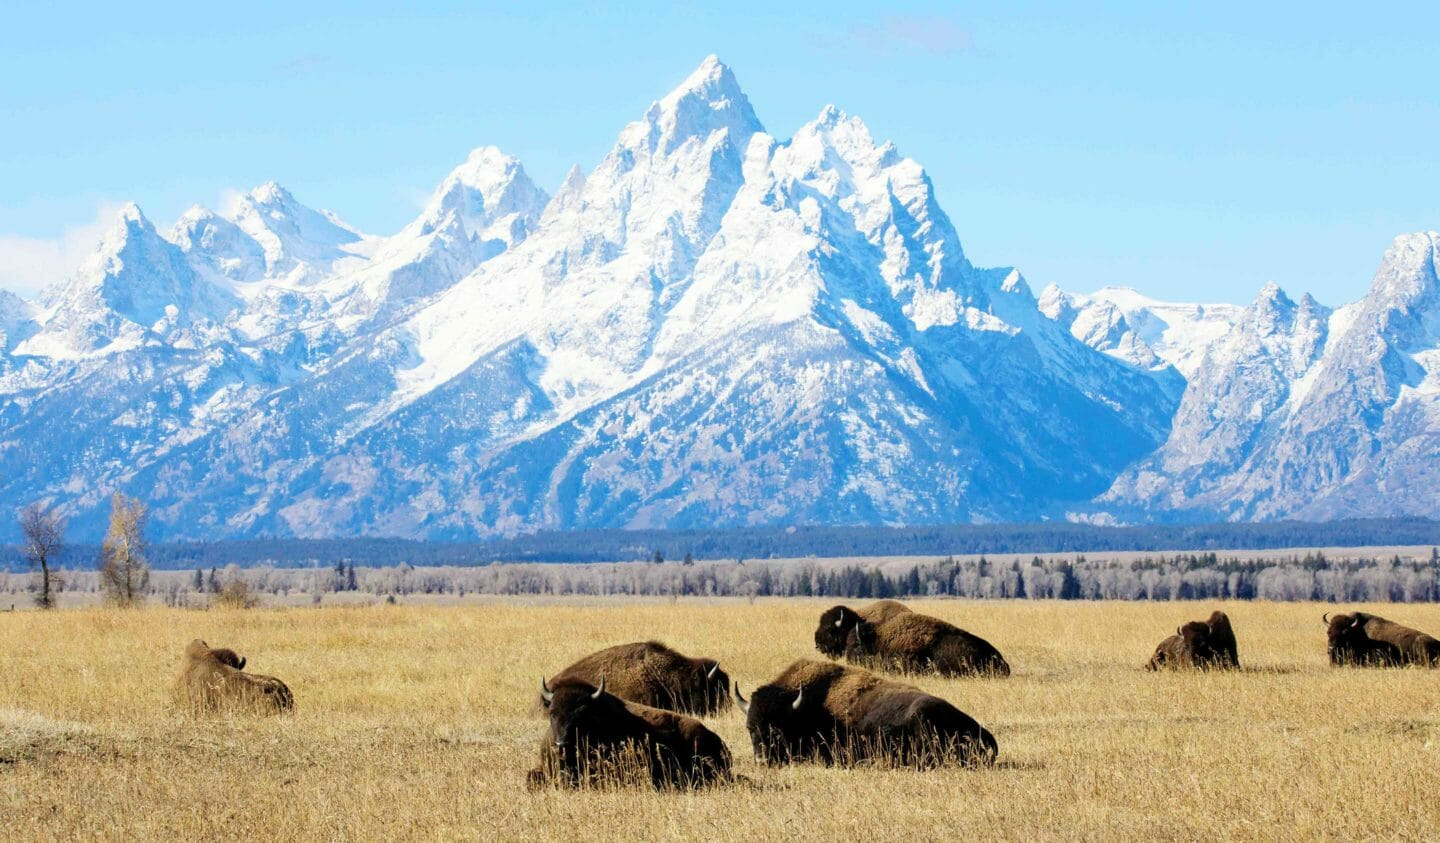 A Herd Of Bison Relax In An Old Ranching Field In Grand Teton National Park